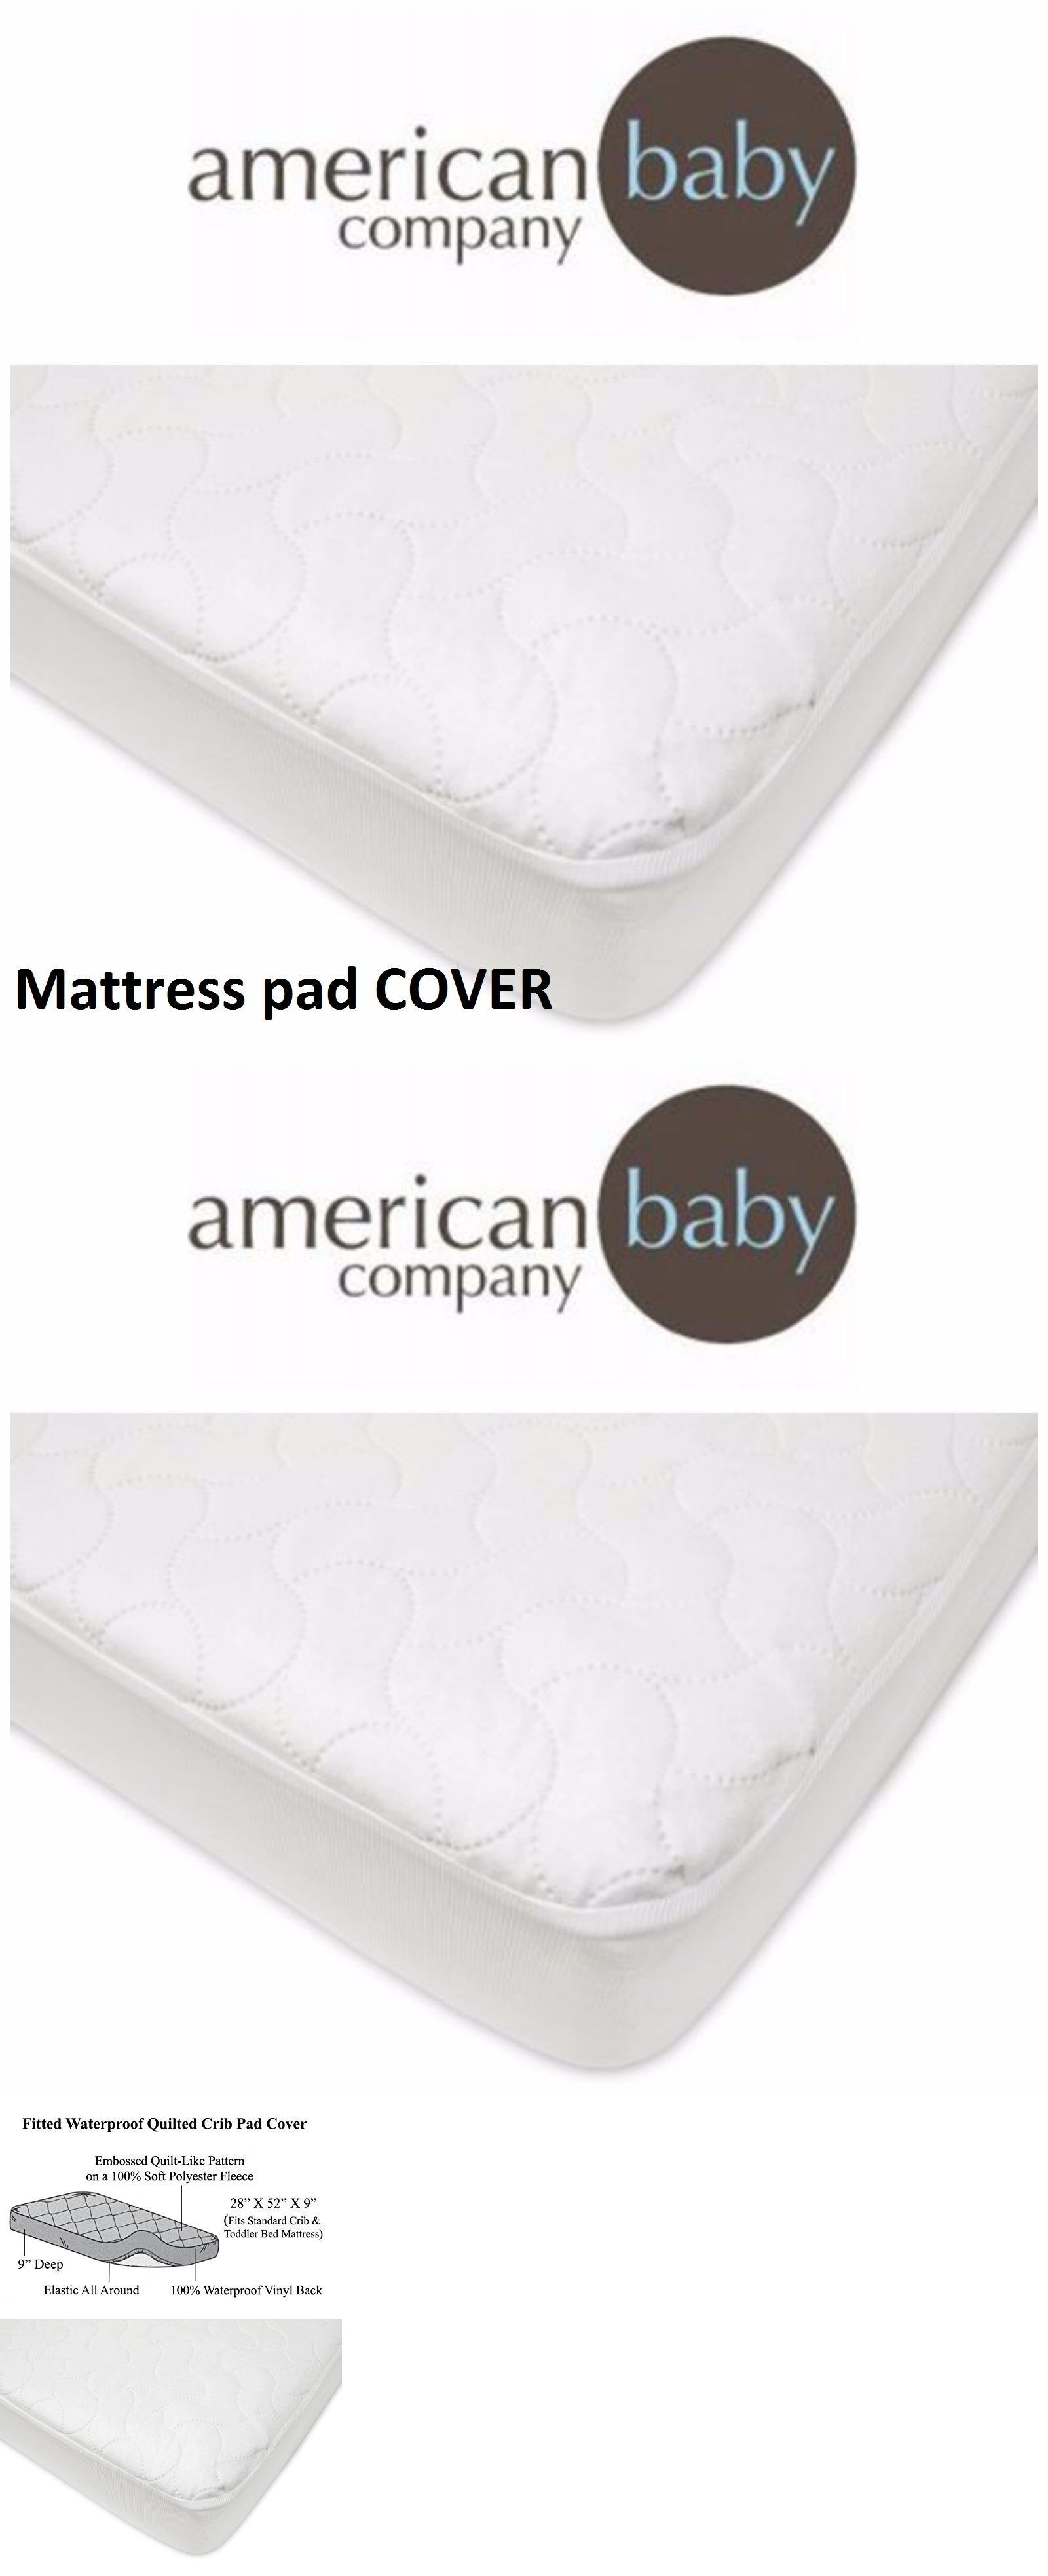 Toddler Mattress Vs Baby Mattress Crib Mattresses 117035 Toddler Mattress Cover Waterproof